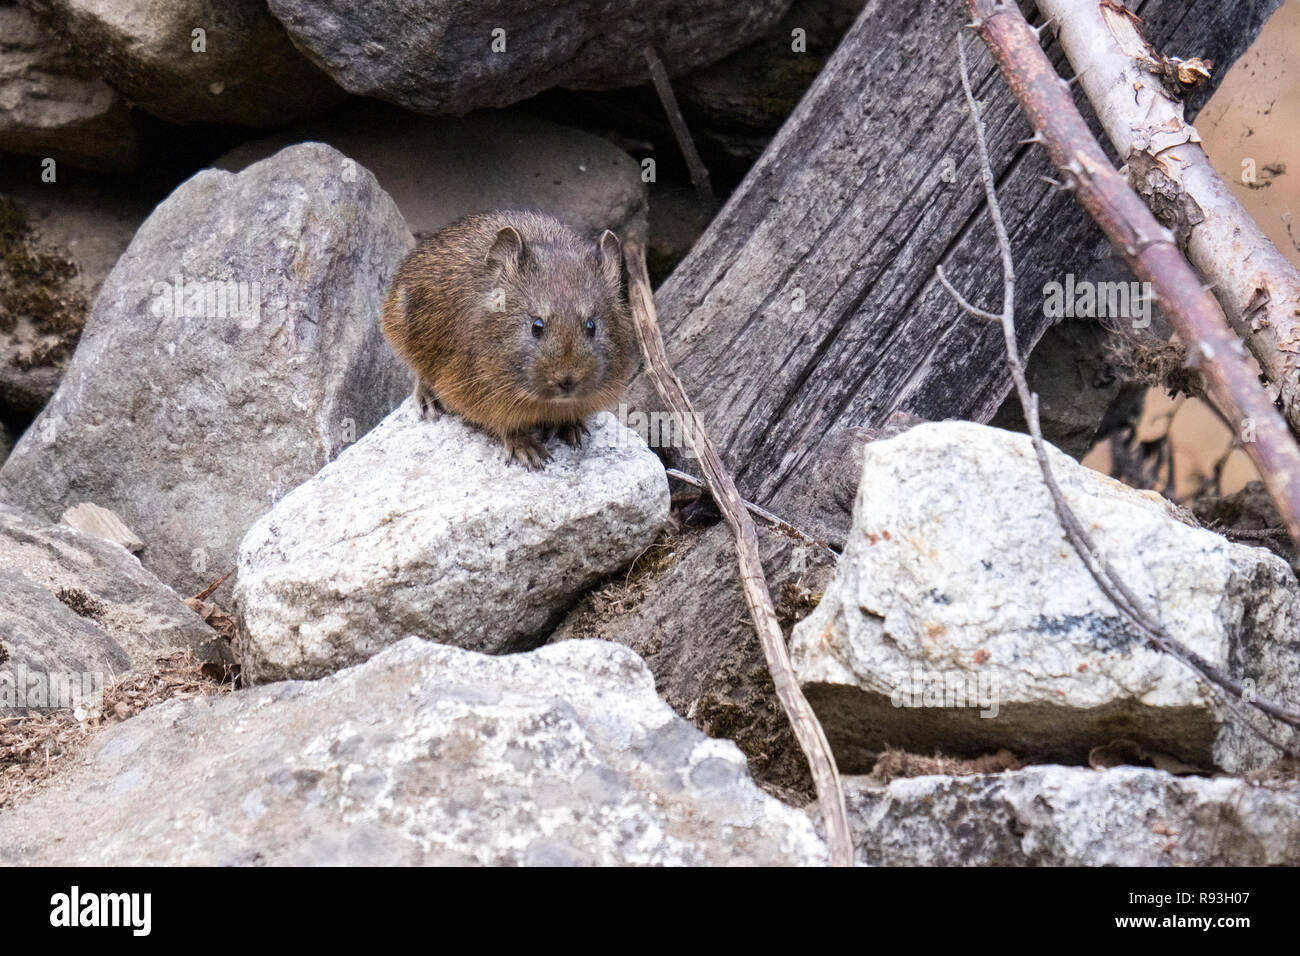 brown rat (Rattus norvegicus), also known as the common rat, in Nepal - Stock Image